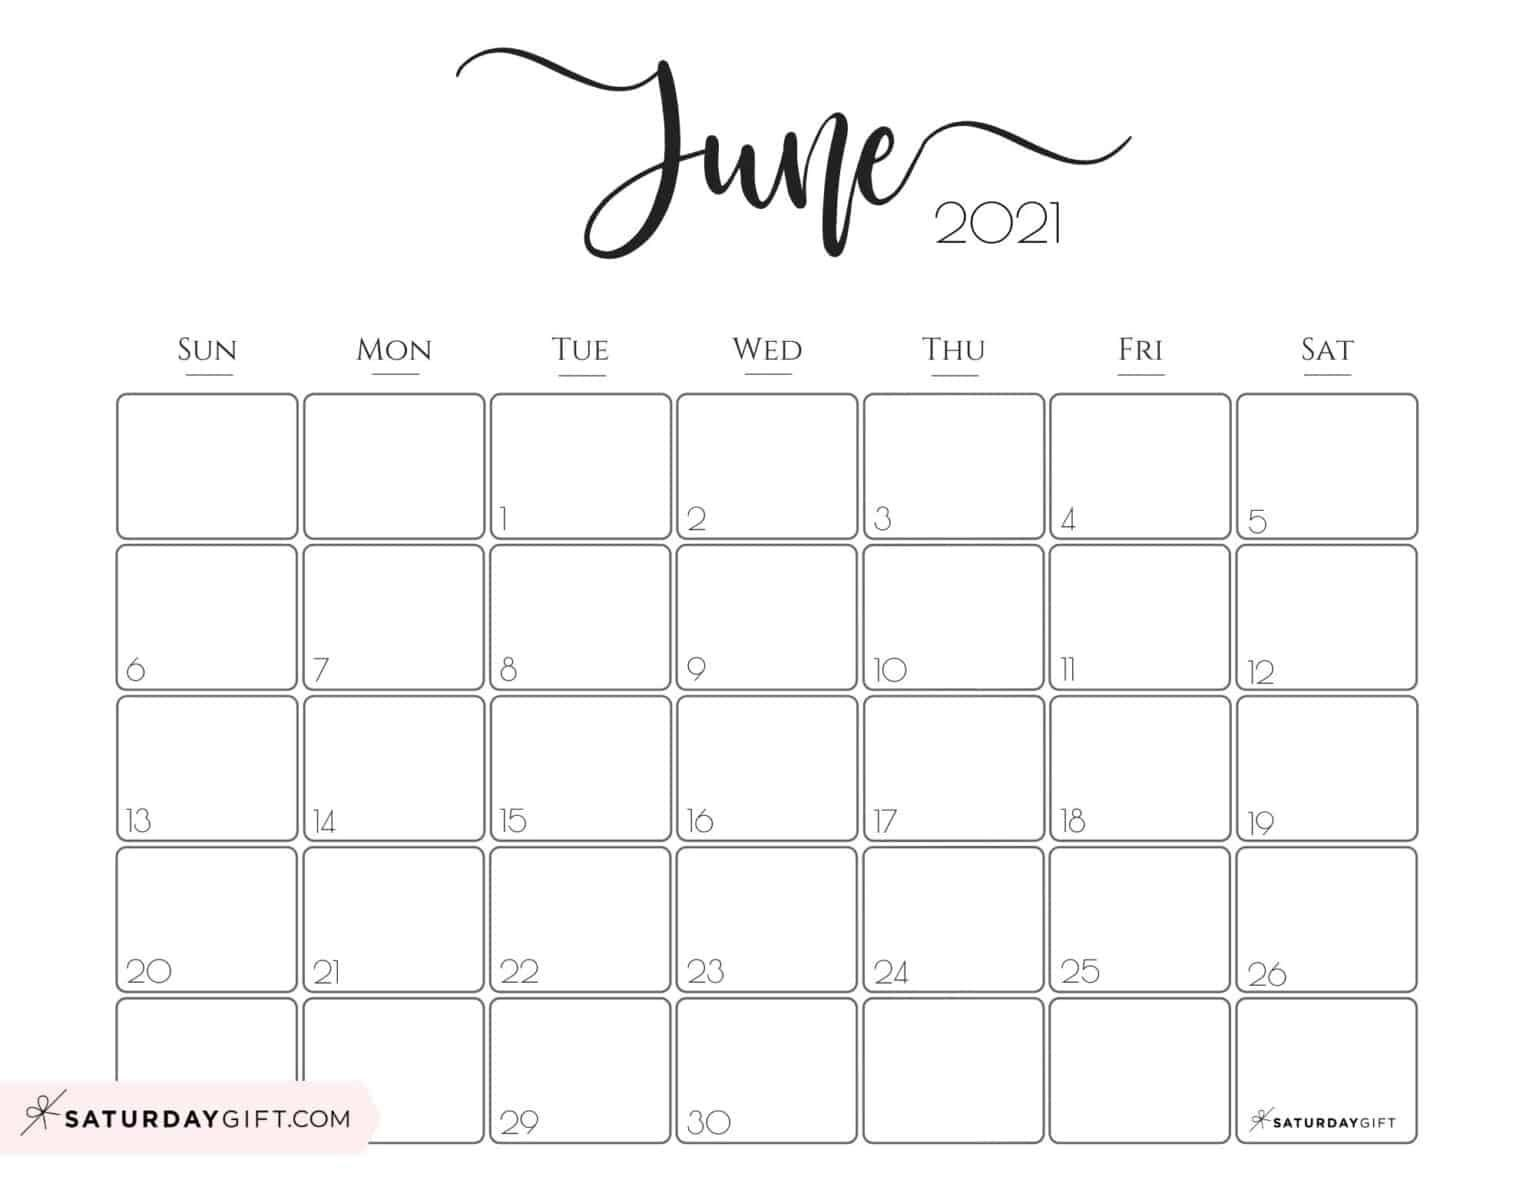 Elegant 2021 Calendarsaturdaygift Pretty Printable